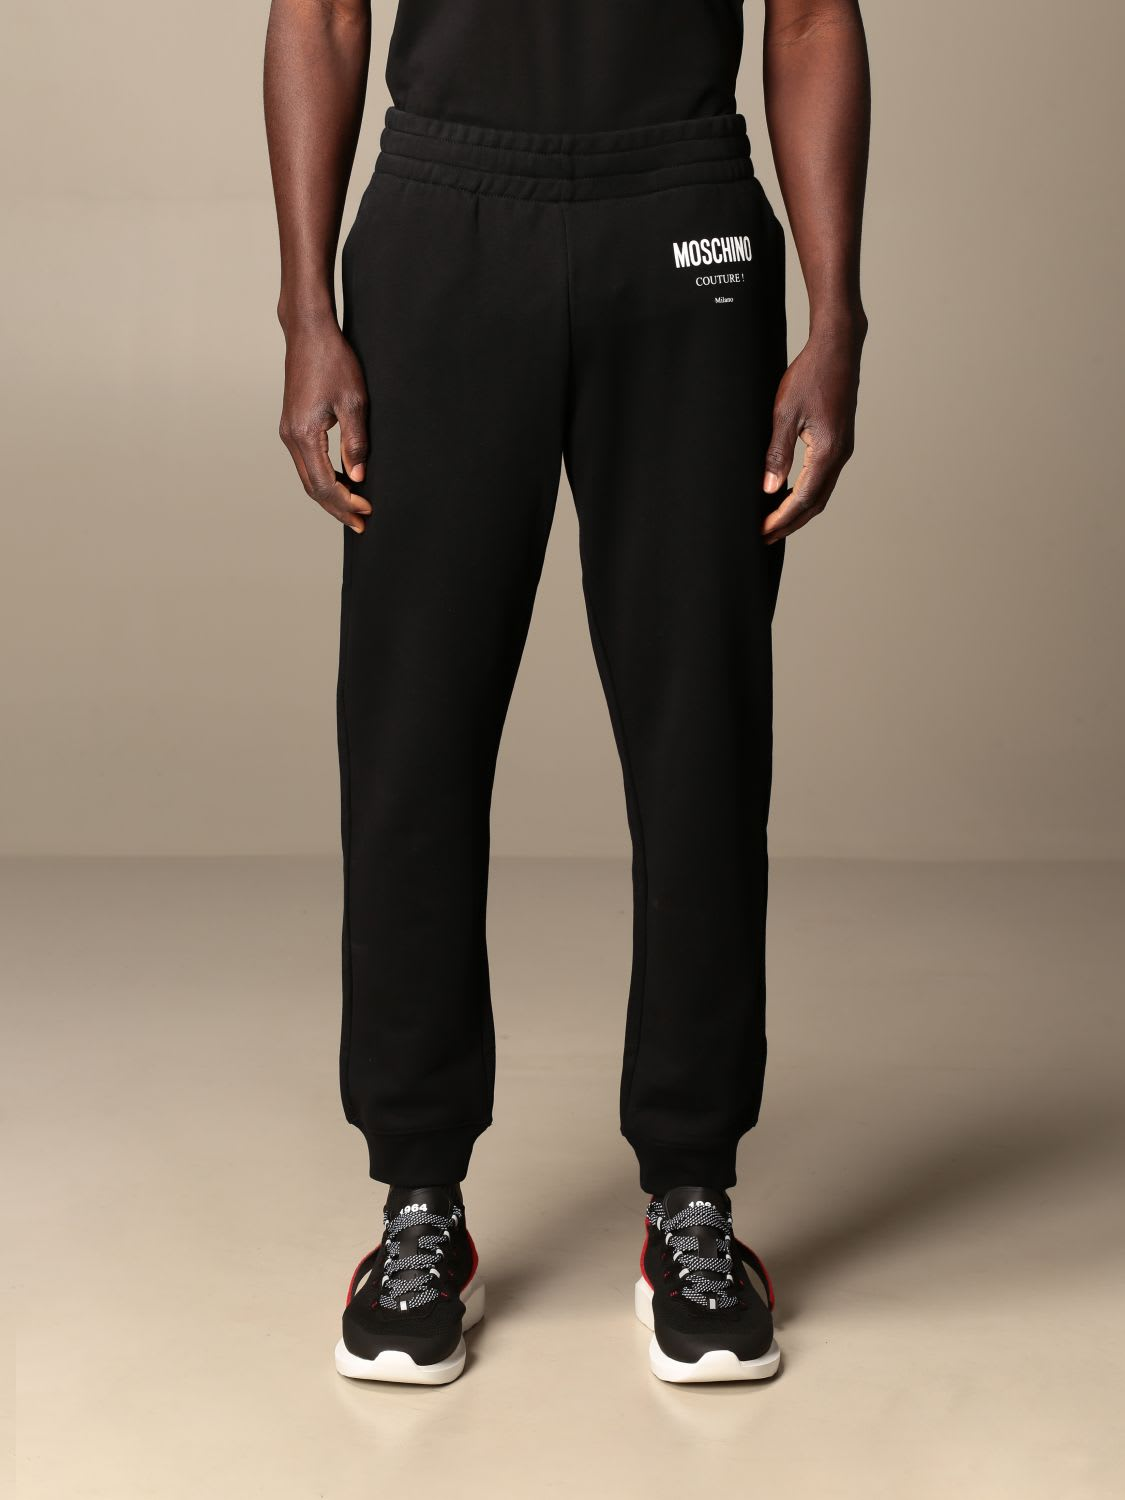 Moschino Couture Pants Moschino Couture Cotton Jogging Trousers With Logo